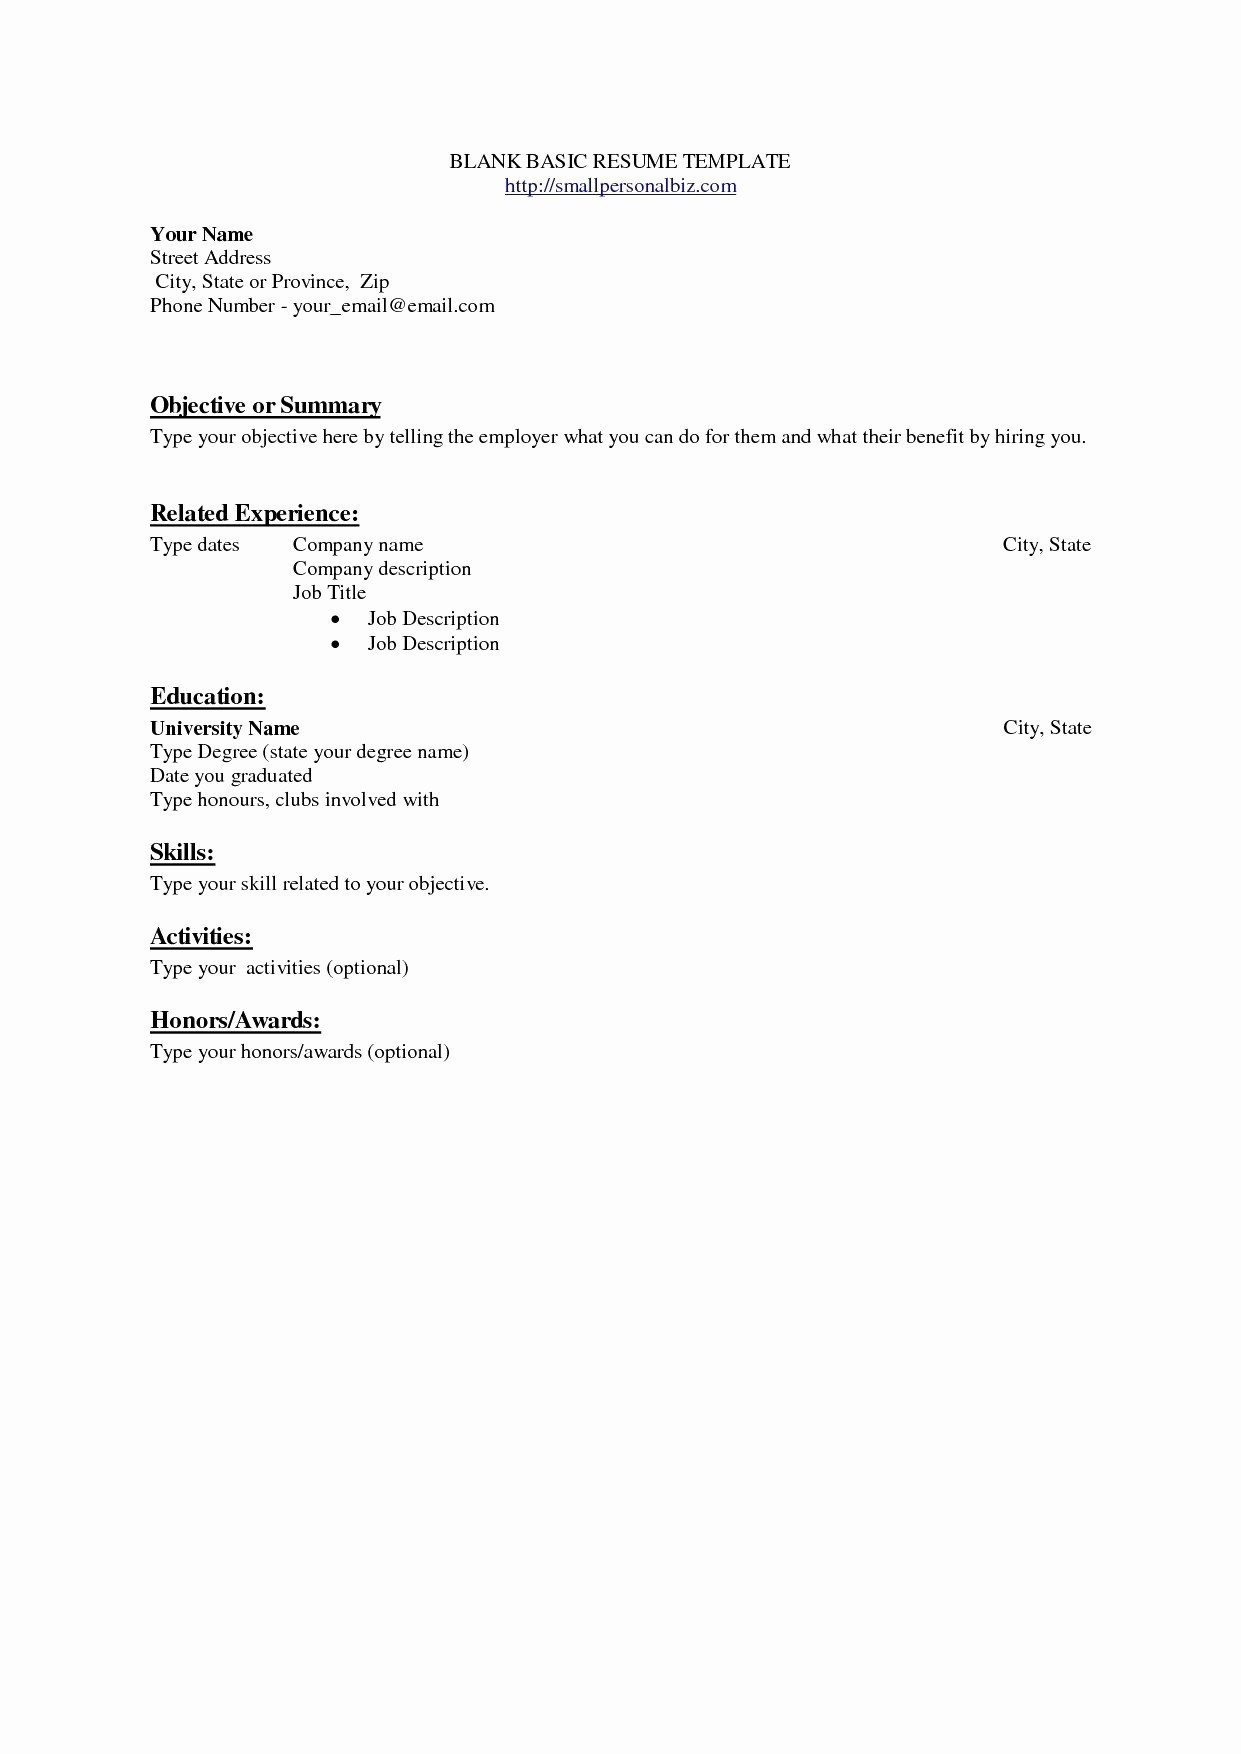 Firefighter Job Description for Resume - Example Making Cv Fresh How to Prepare Resume New Fresh Examples